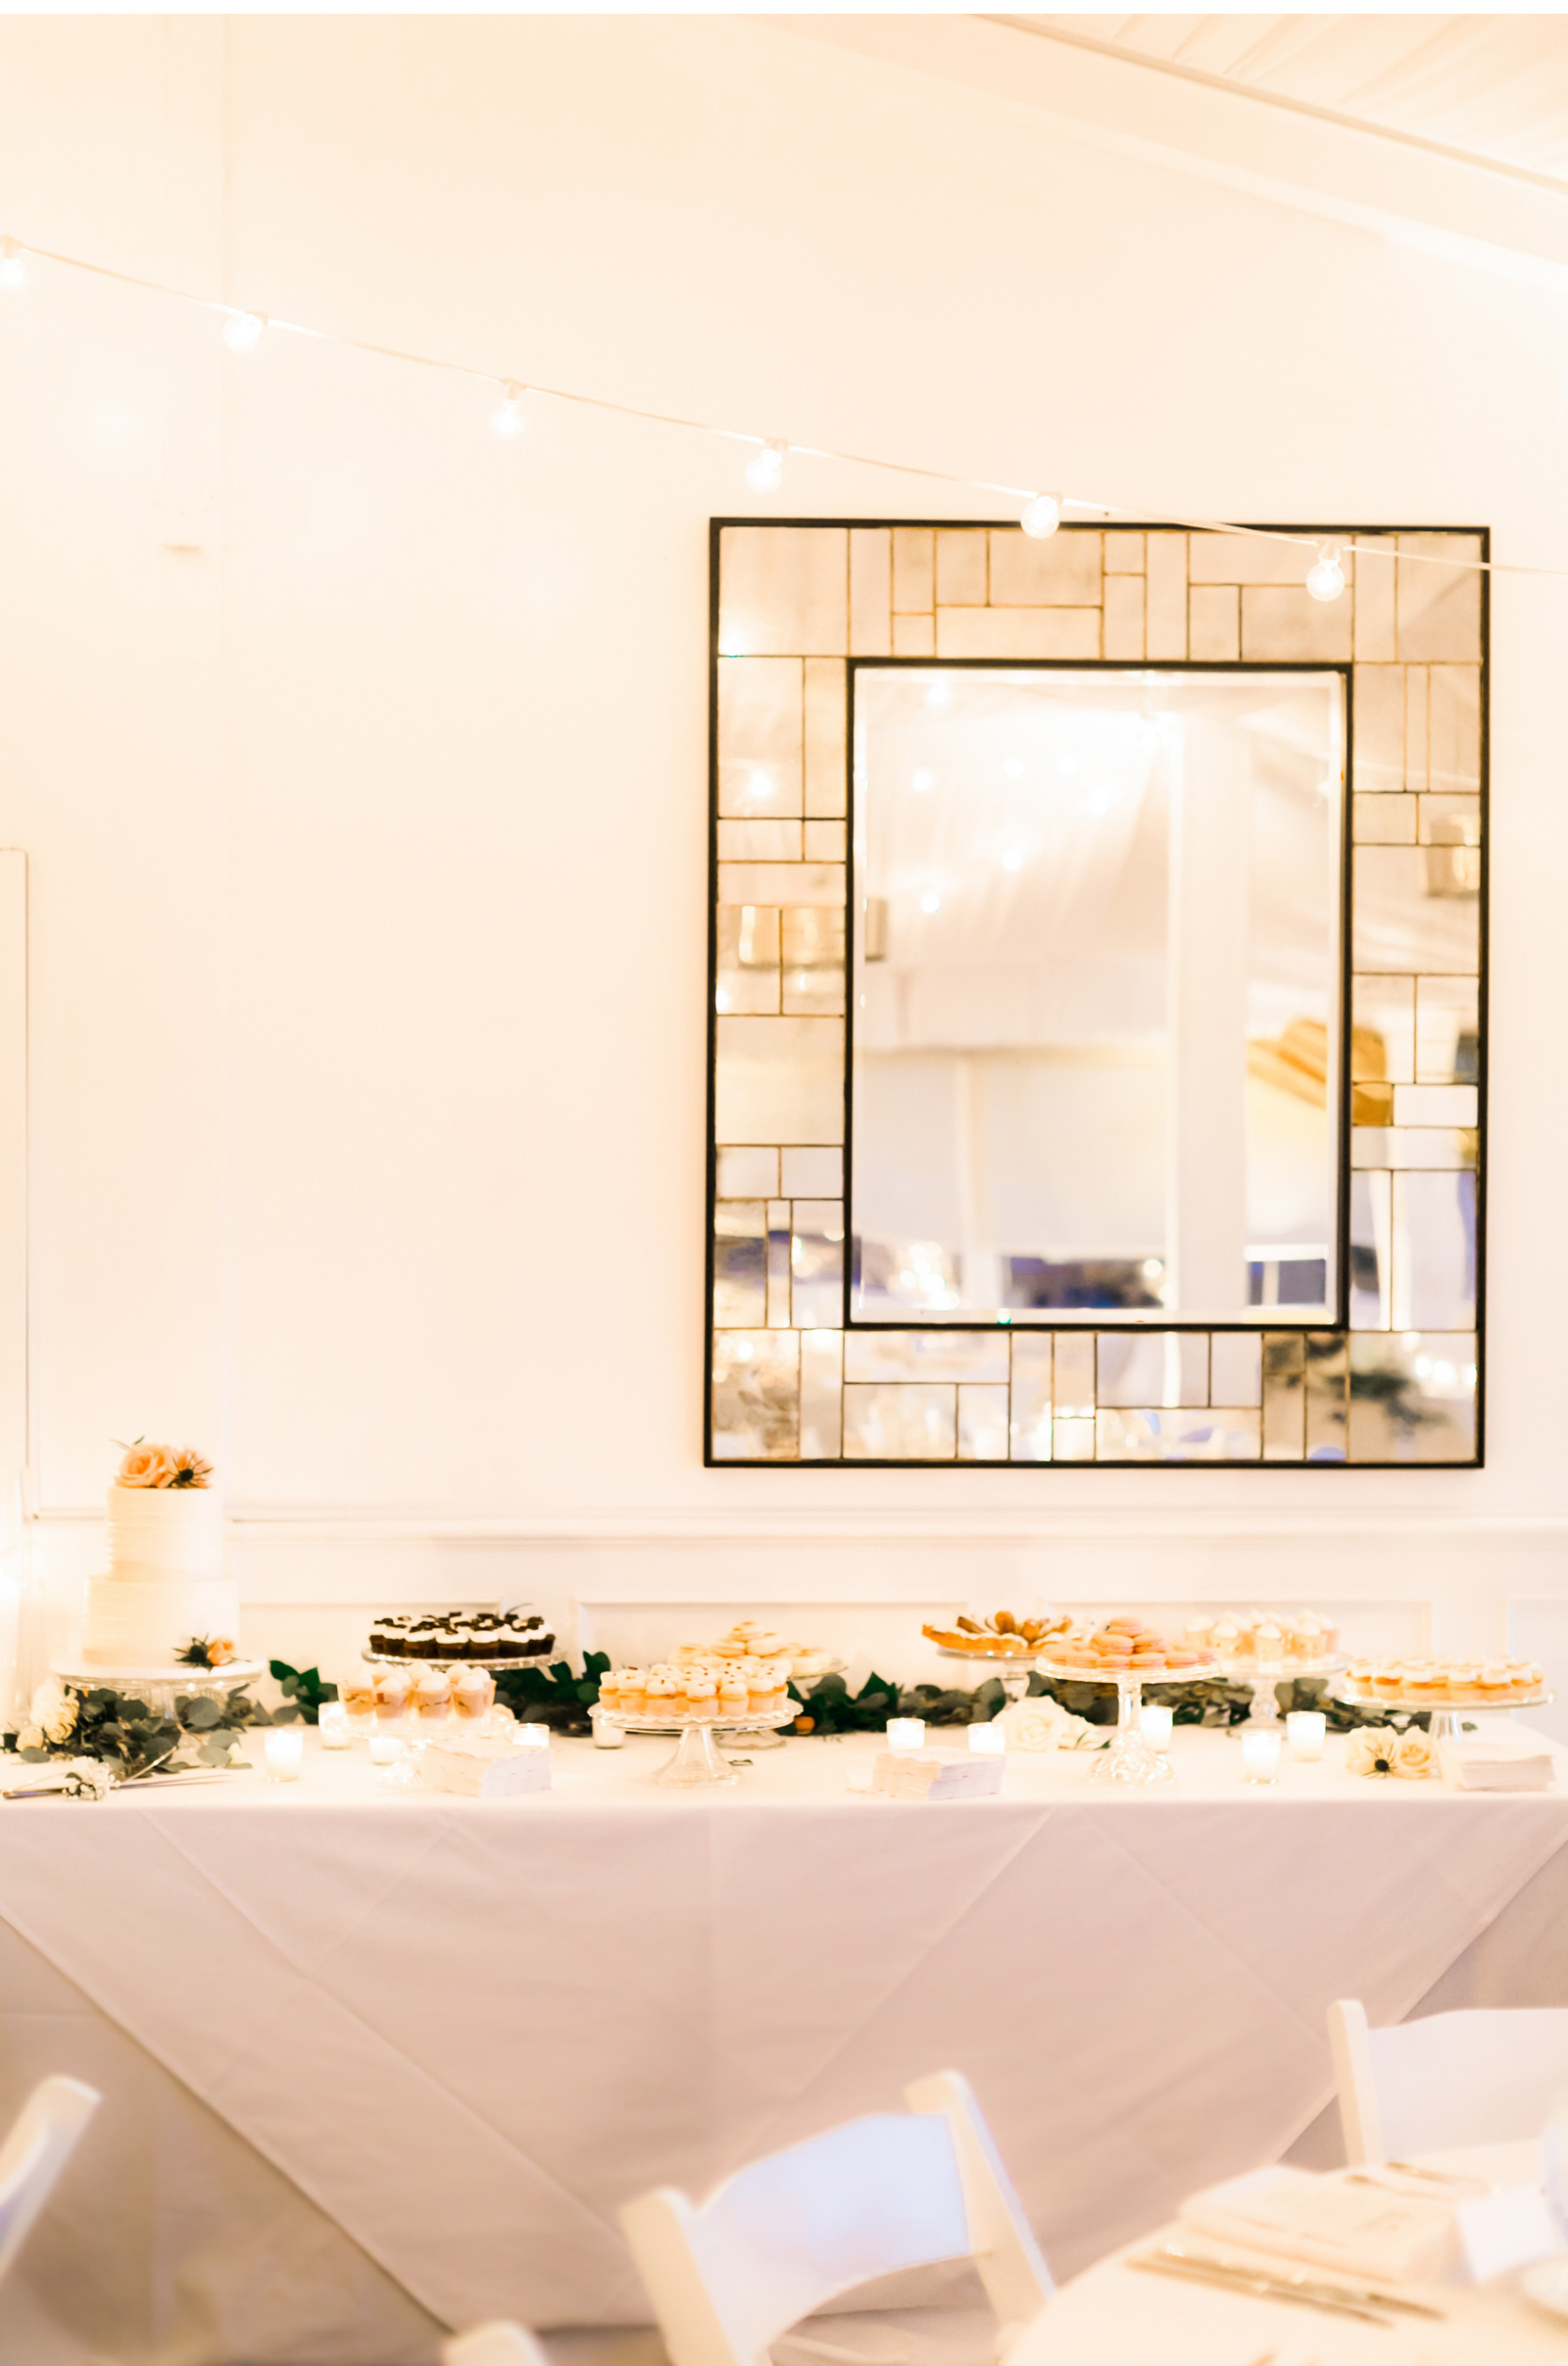 Sunset-Restaurant-Wedding-Natalie-Schutt-Photography_01_09.jpg